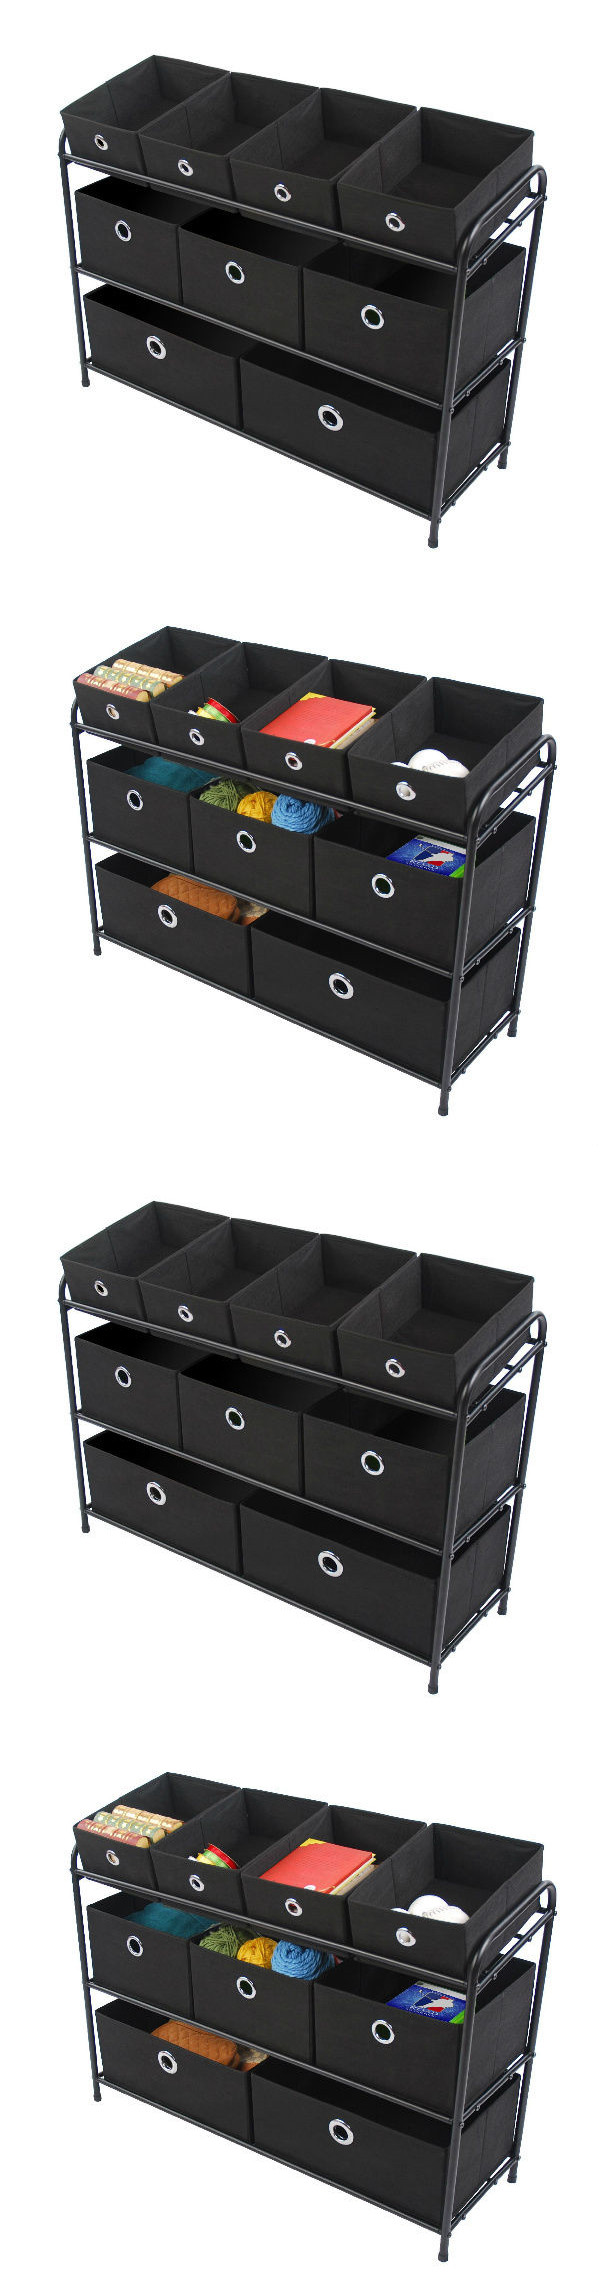 Storage bins and baskets multi bin storage organizer toy